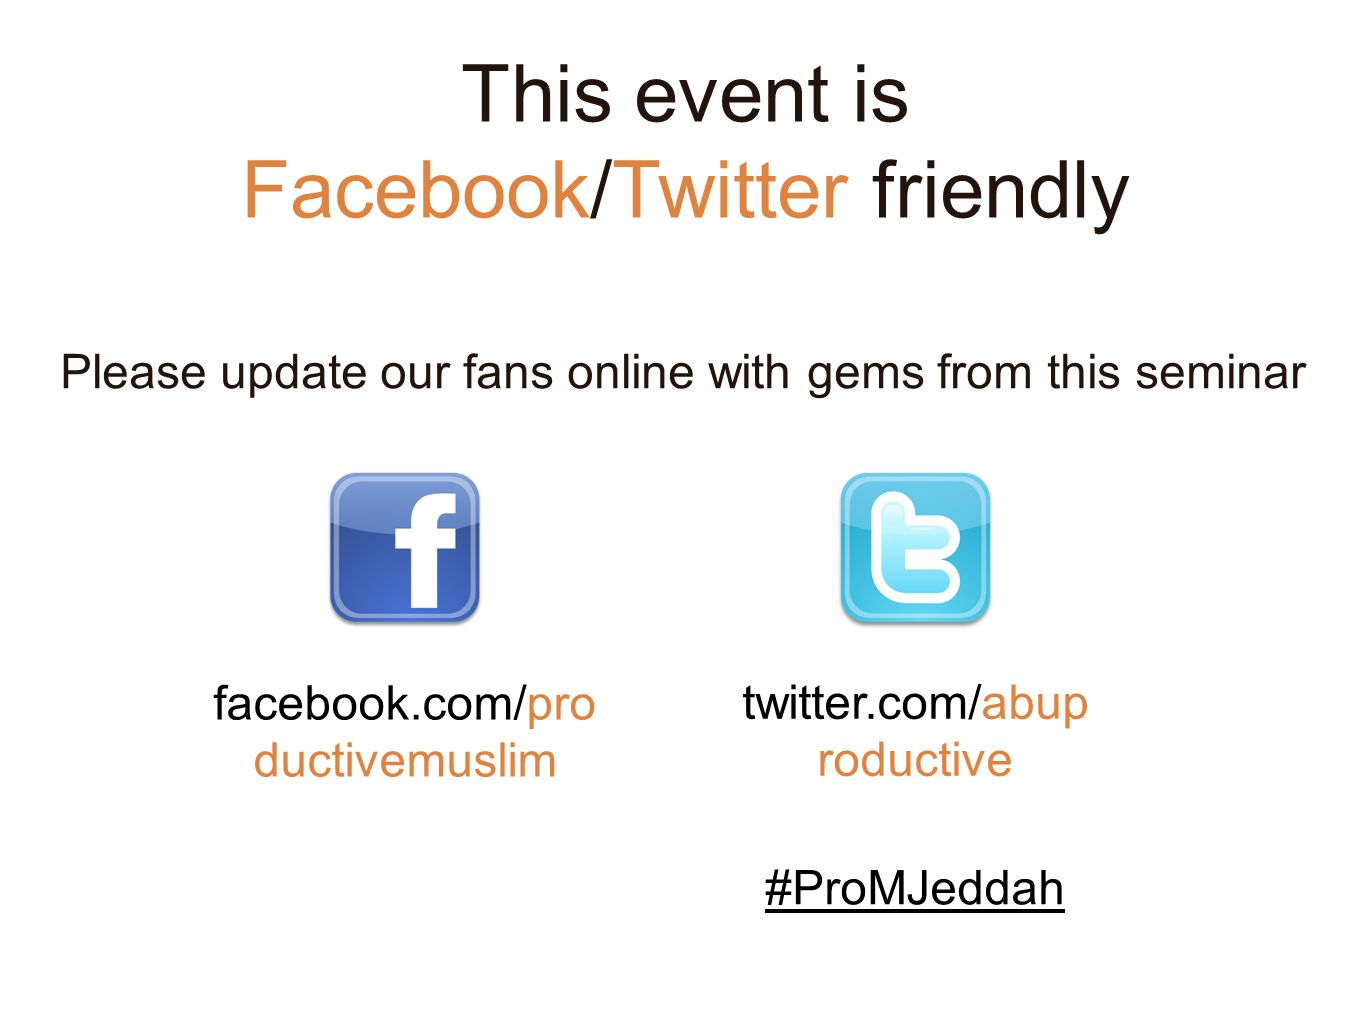 This event is Facebook/Twitter friendly facebook.com/pro ductivemuslim twitter.com/abup roductive Please update our fans online with gems from this se